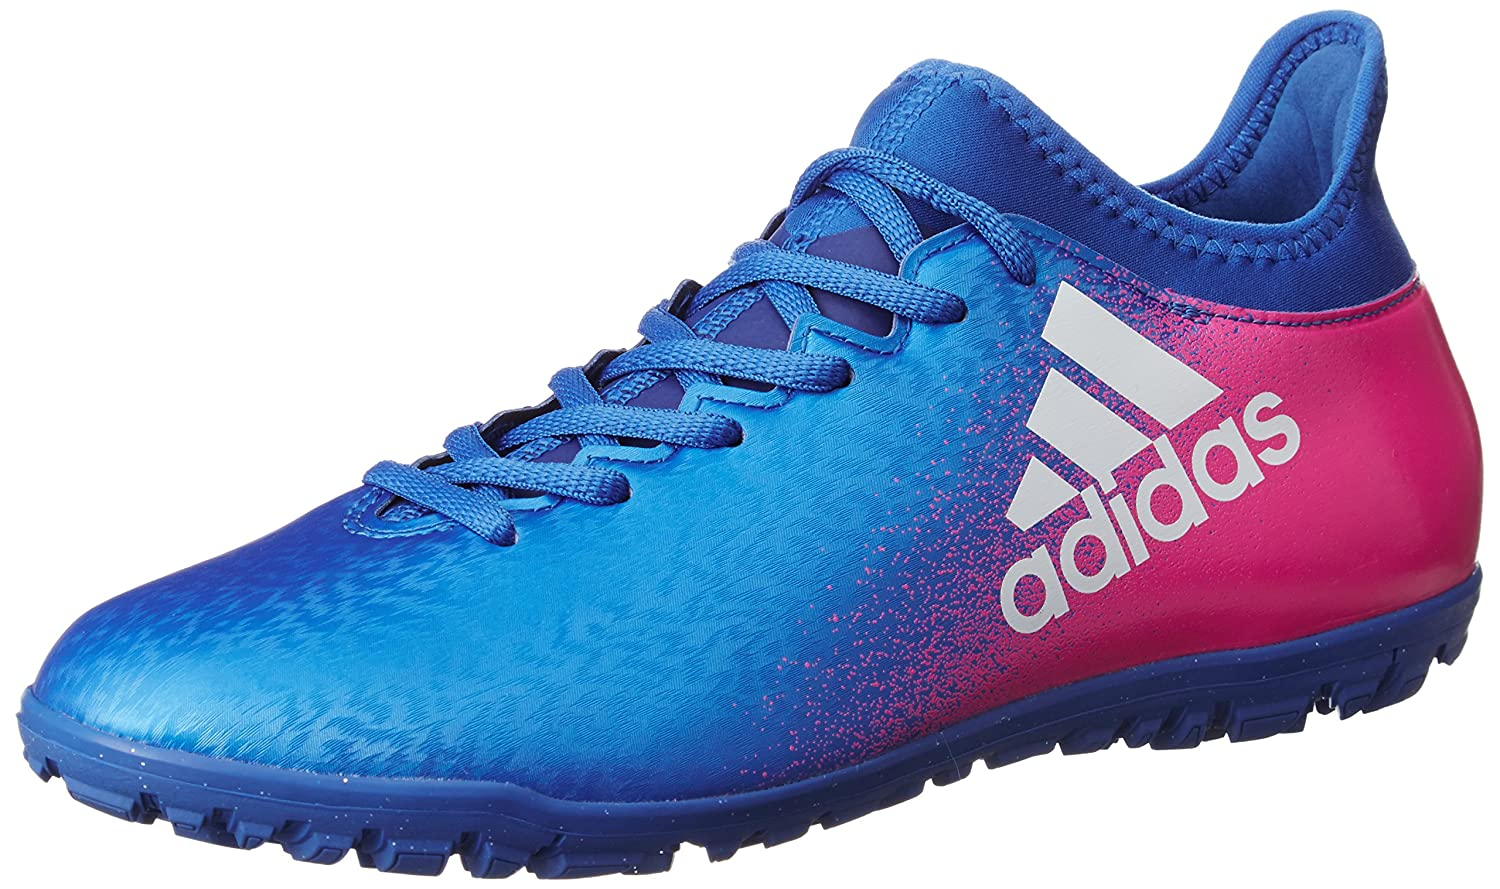 adidas Messi 16.3 TF Football Boots